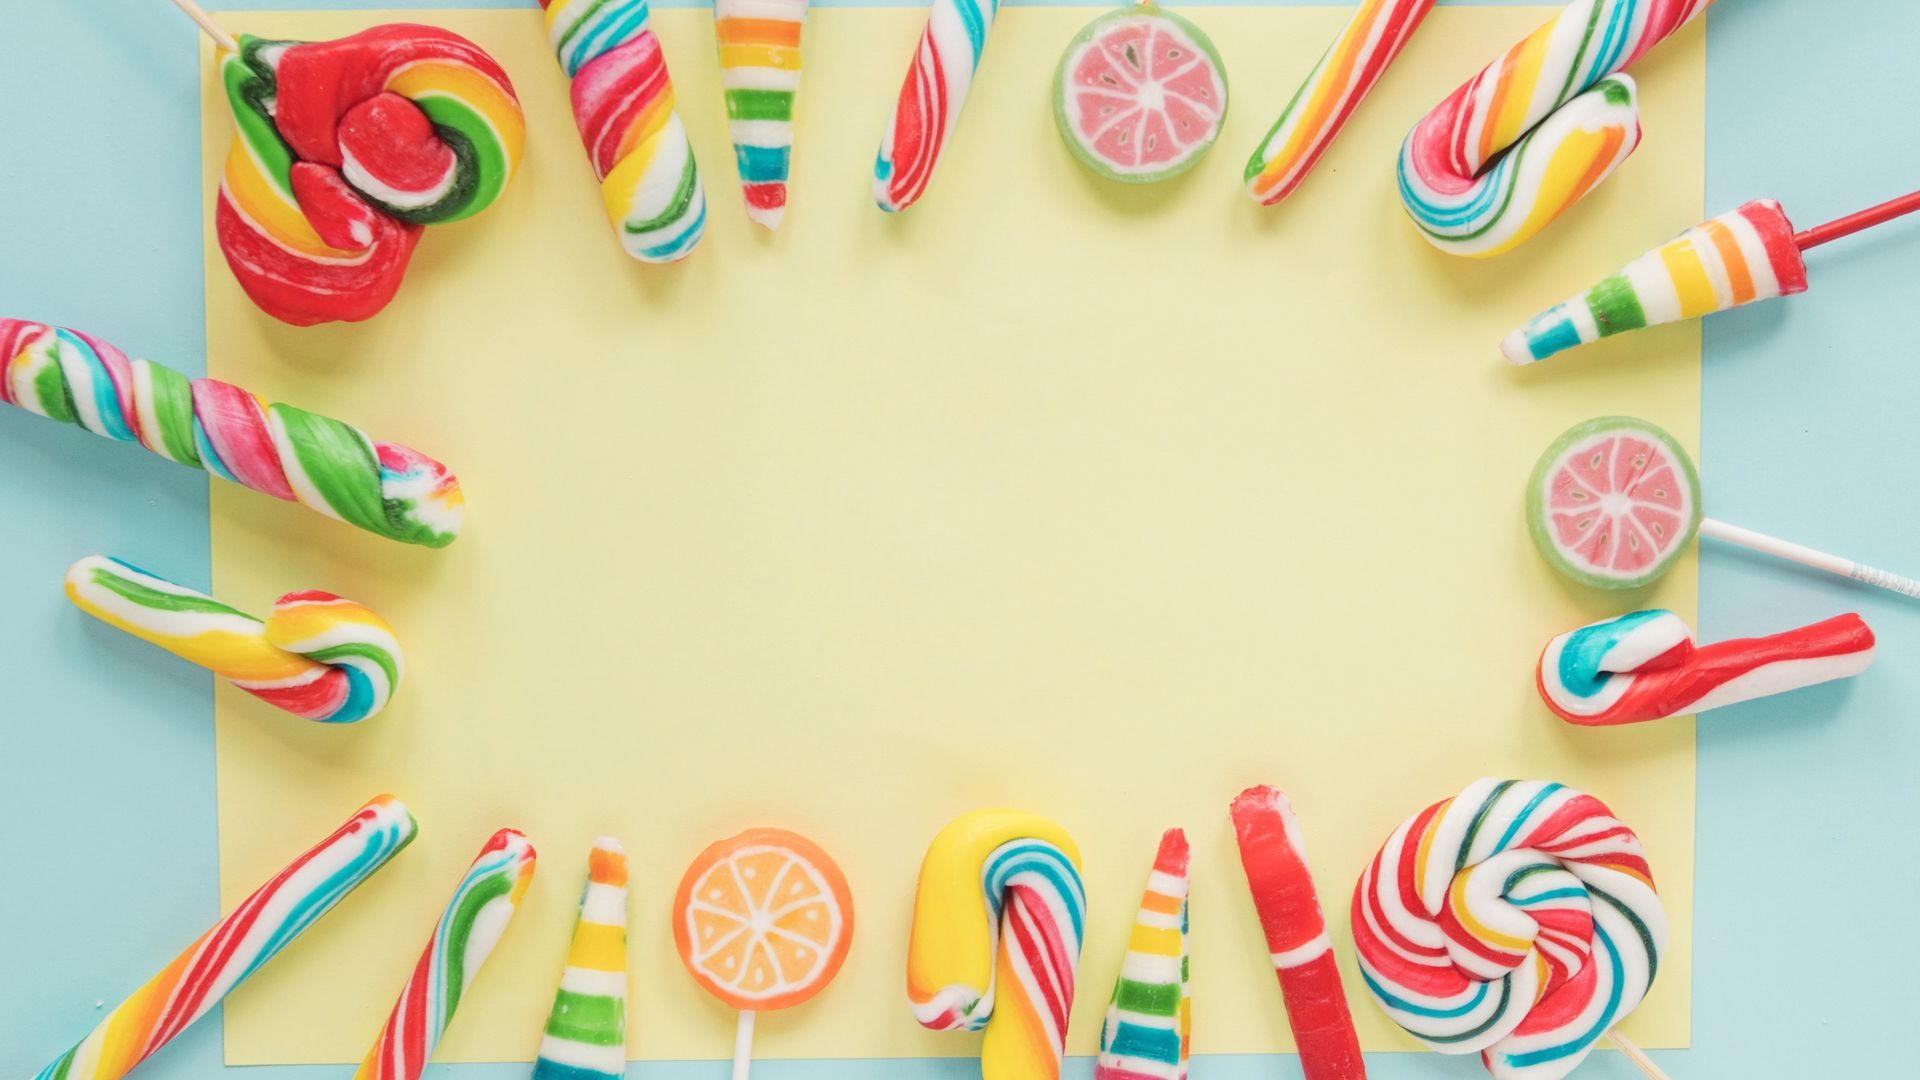 wallpapers candies